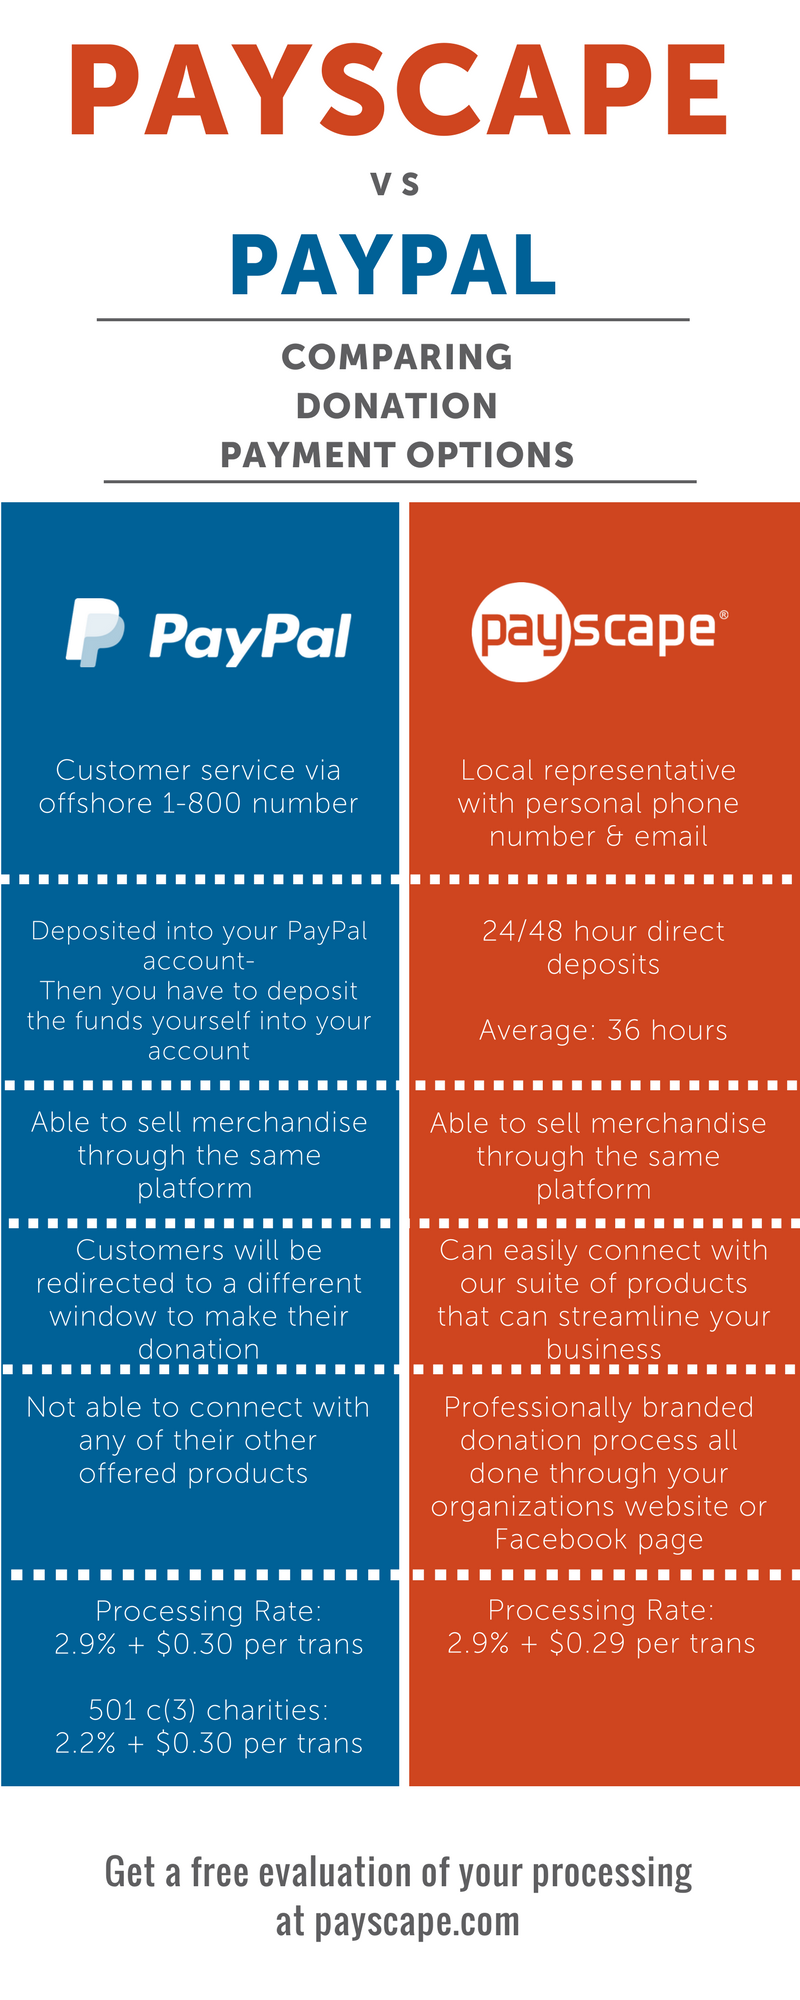 Payscape vs Paypal 2017 | Donations-6.png